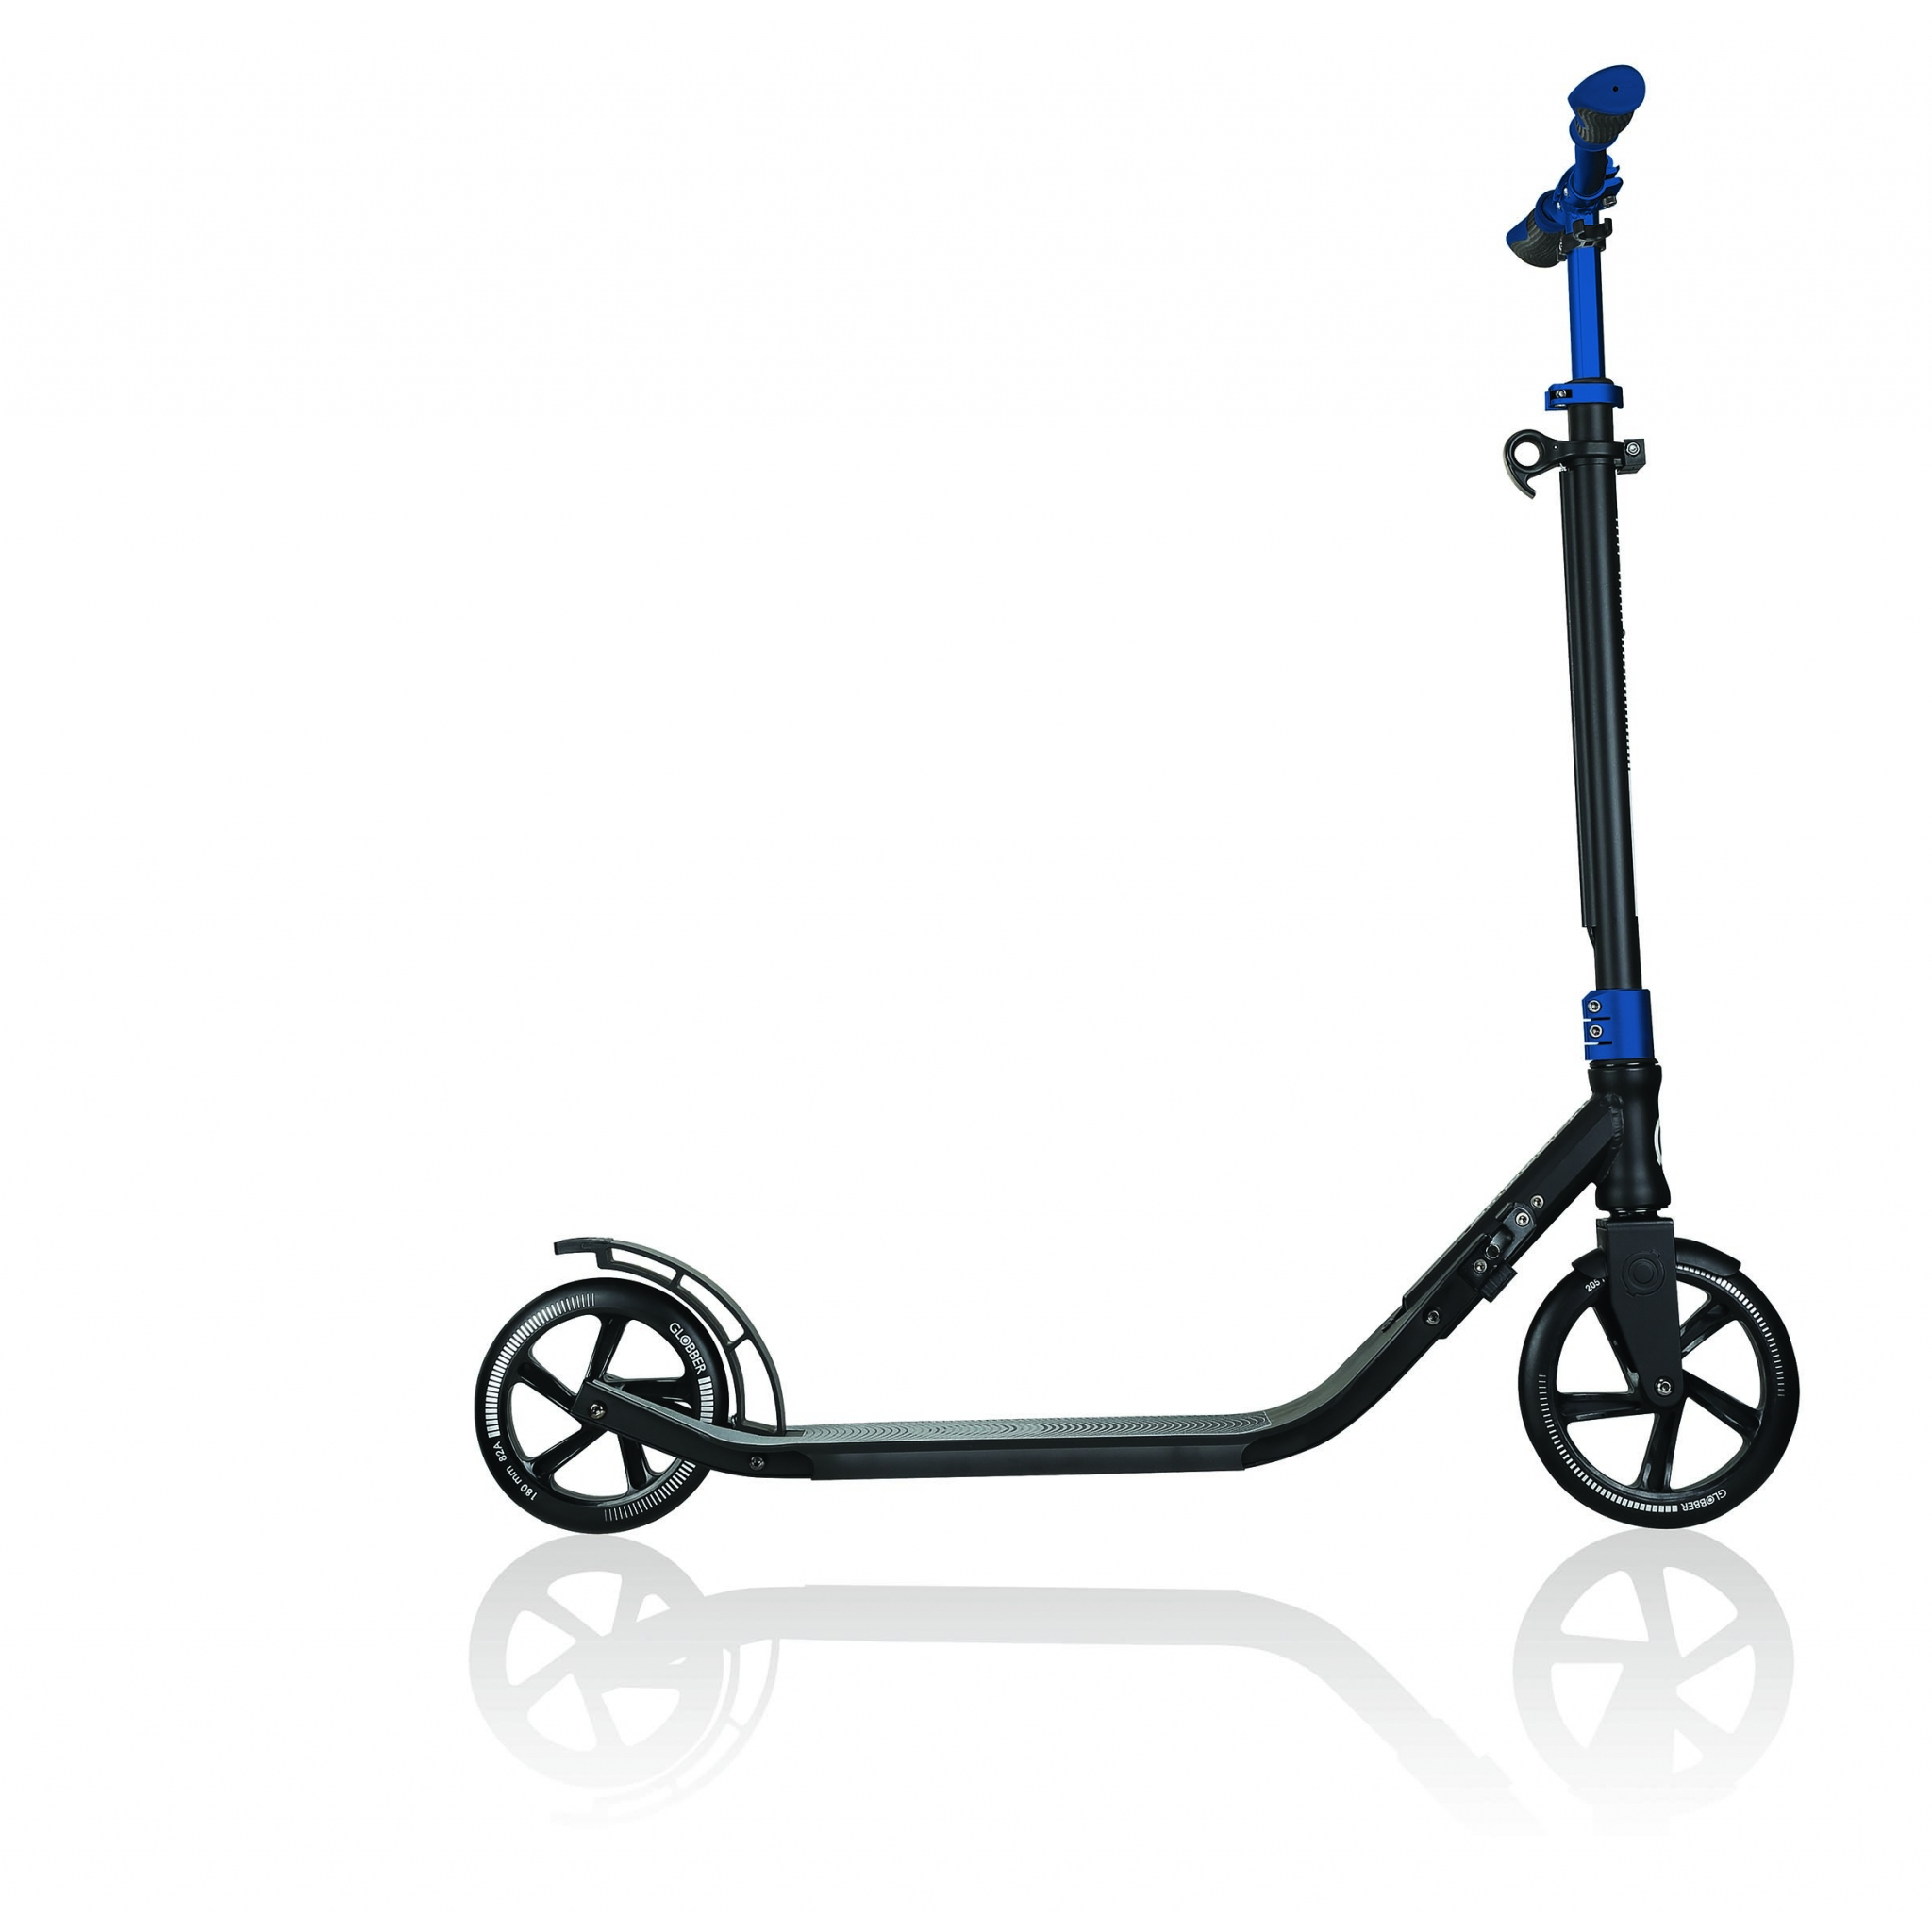 Globber-ONE-NL-205-180-DUO-2-wheel-foldable-scooter-for-adults-aluminium-deck-cobalt-blue